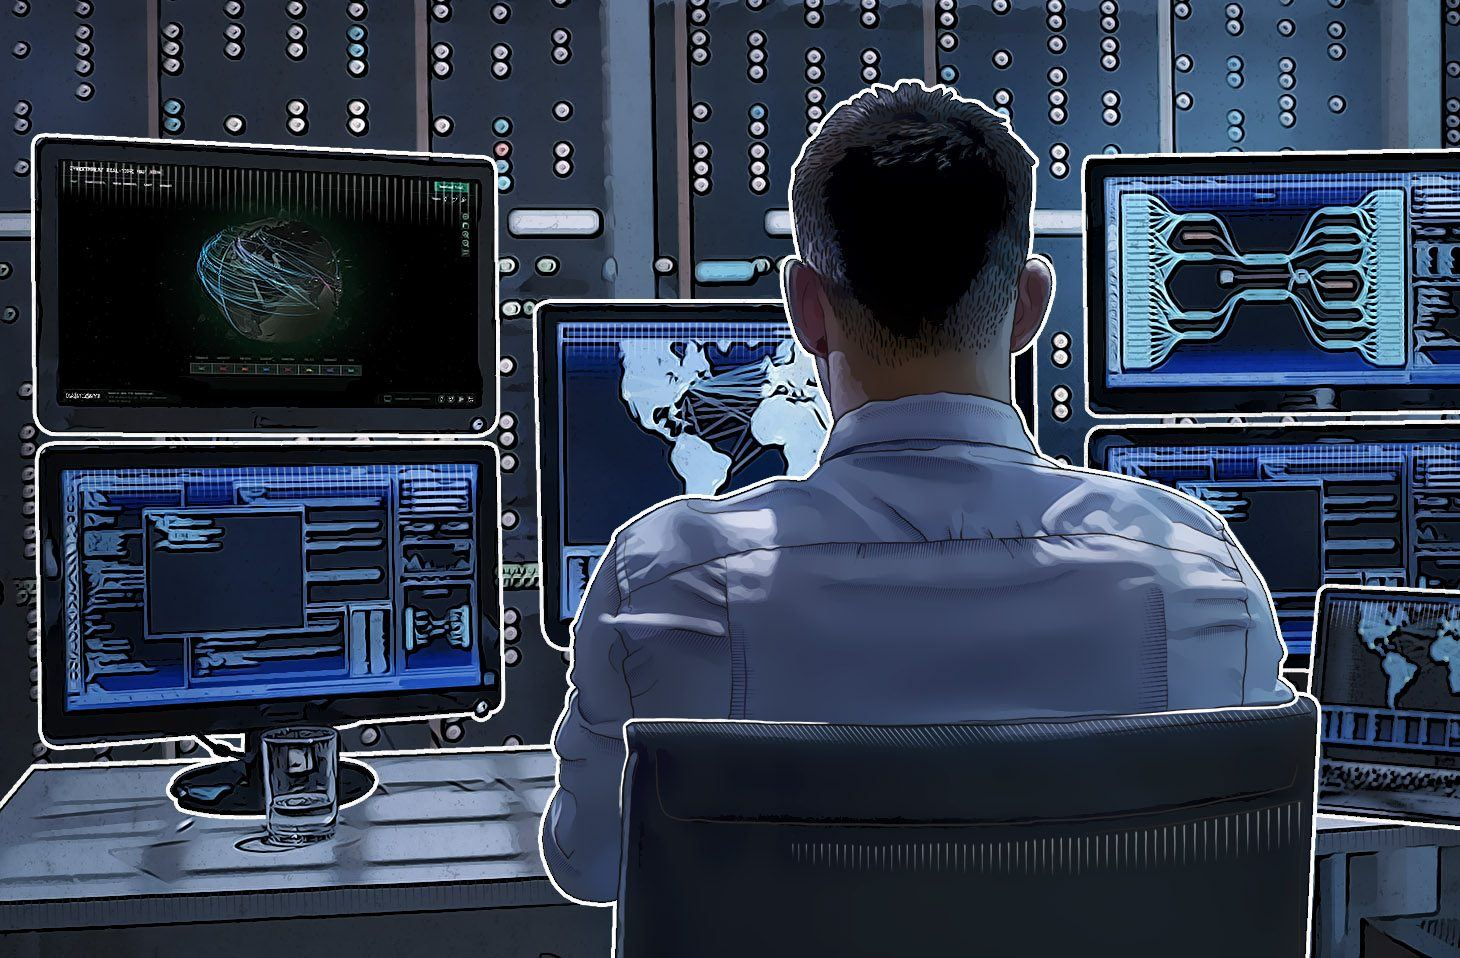 Quiet please: two-thirds of industrial organizations don't report cybersecurity incidents to regulators 1